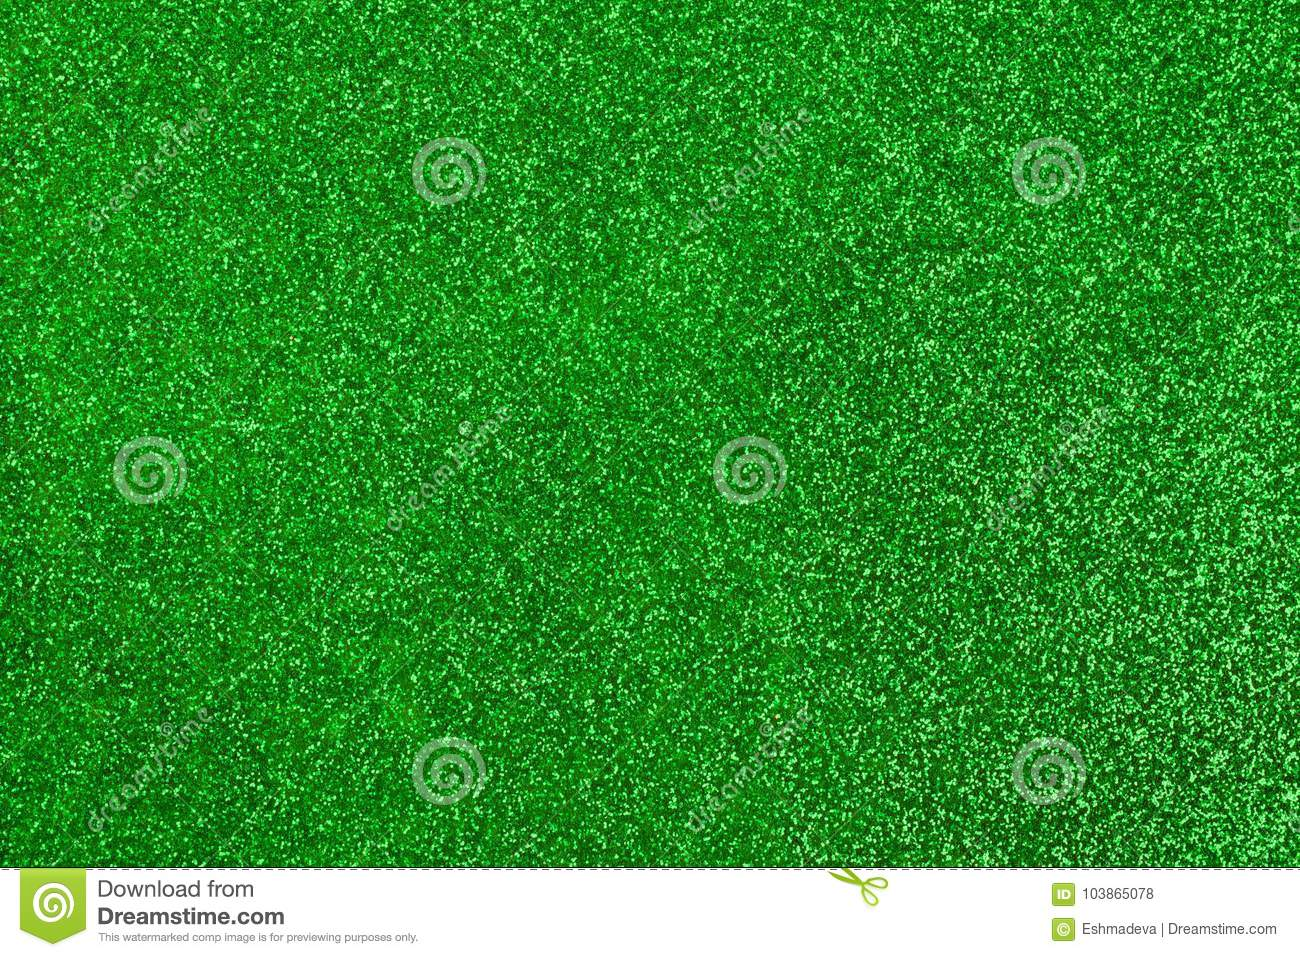 Green glitter texture and background